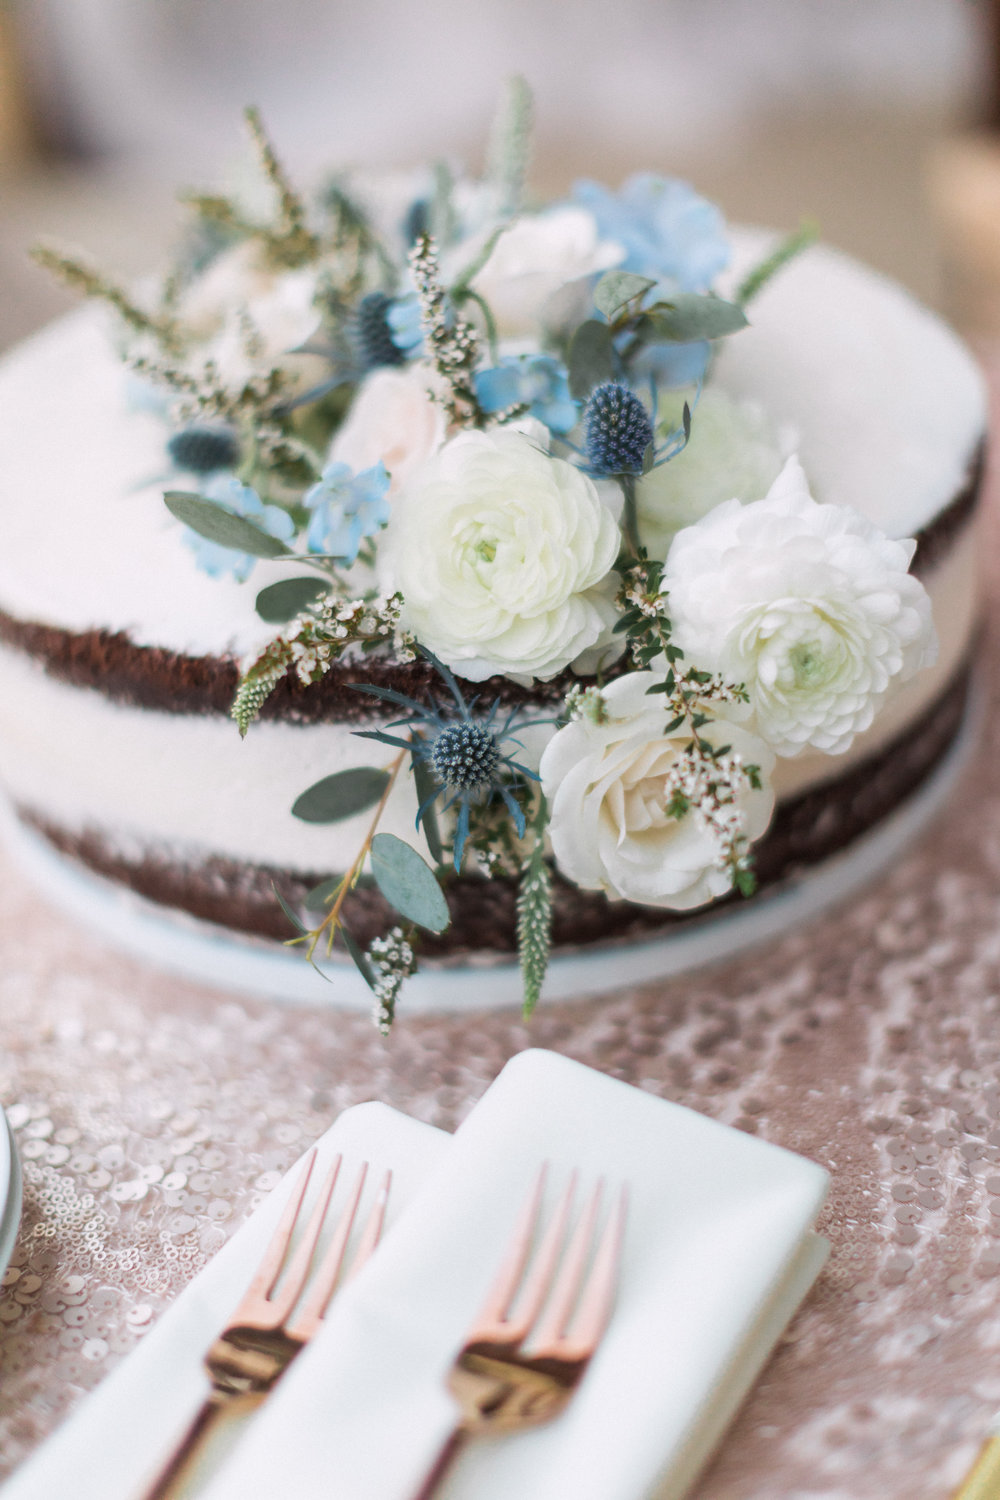 Elegant Backyard Wedding | Summer Wedding | Dusty Blue Wedding Hues | Michelle Leo Events | Utah Event Planner and Designer | Carla Boecklin Photography